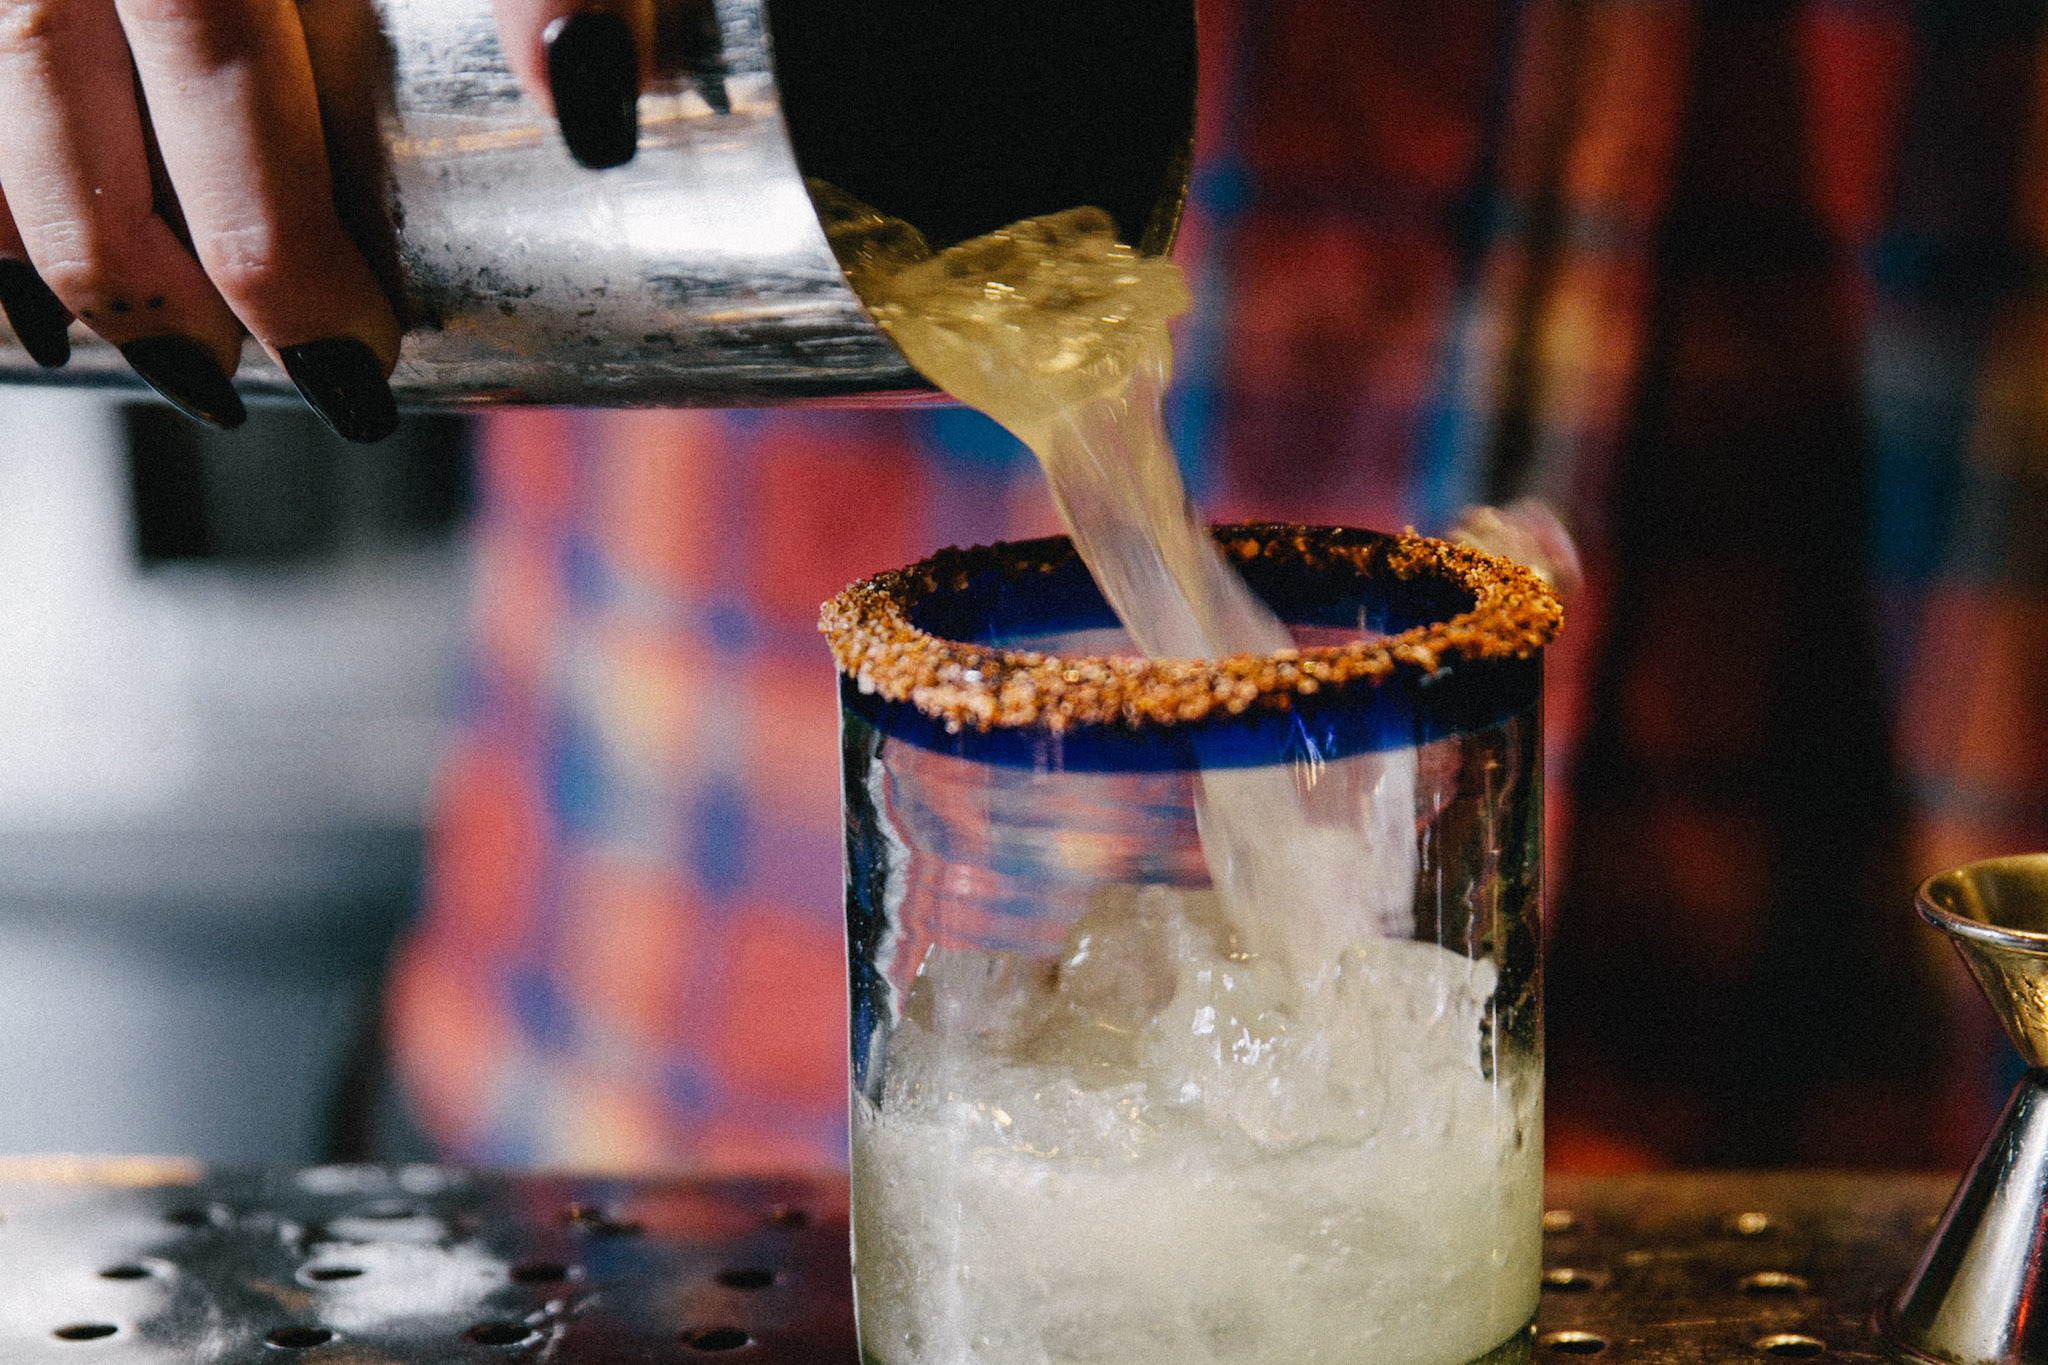 A bartender pours a margarita at El Rey, a Stephen Starr joint near Rittenhouse Square.